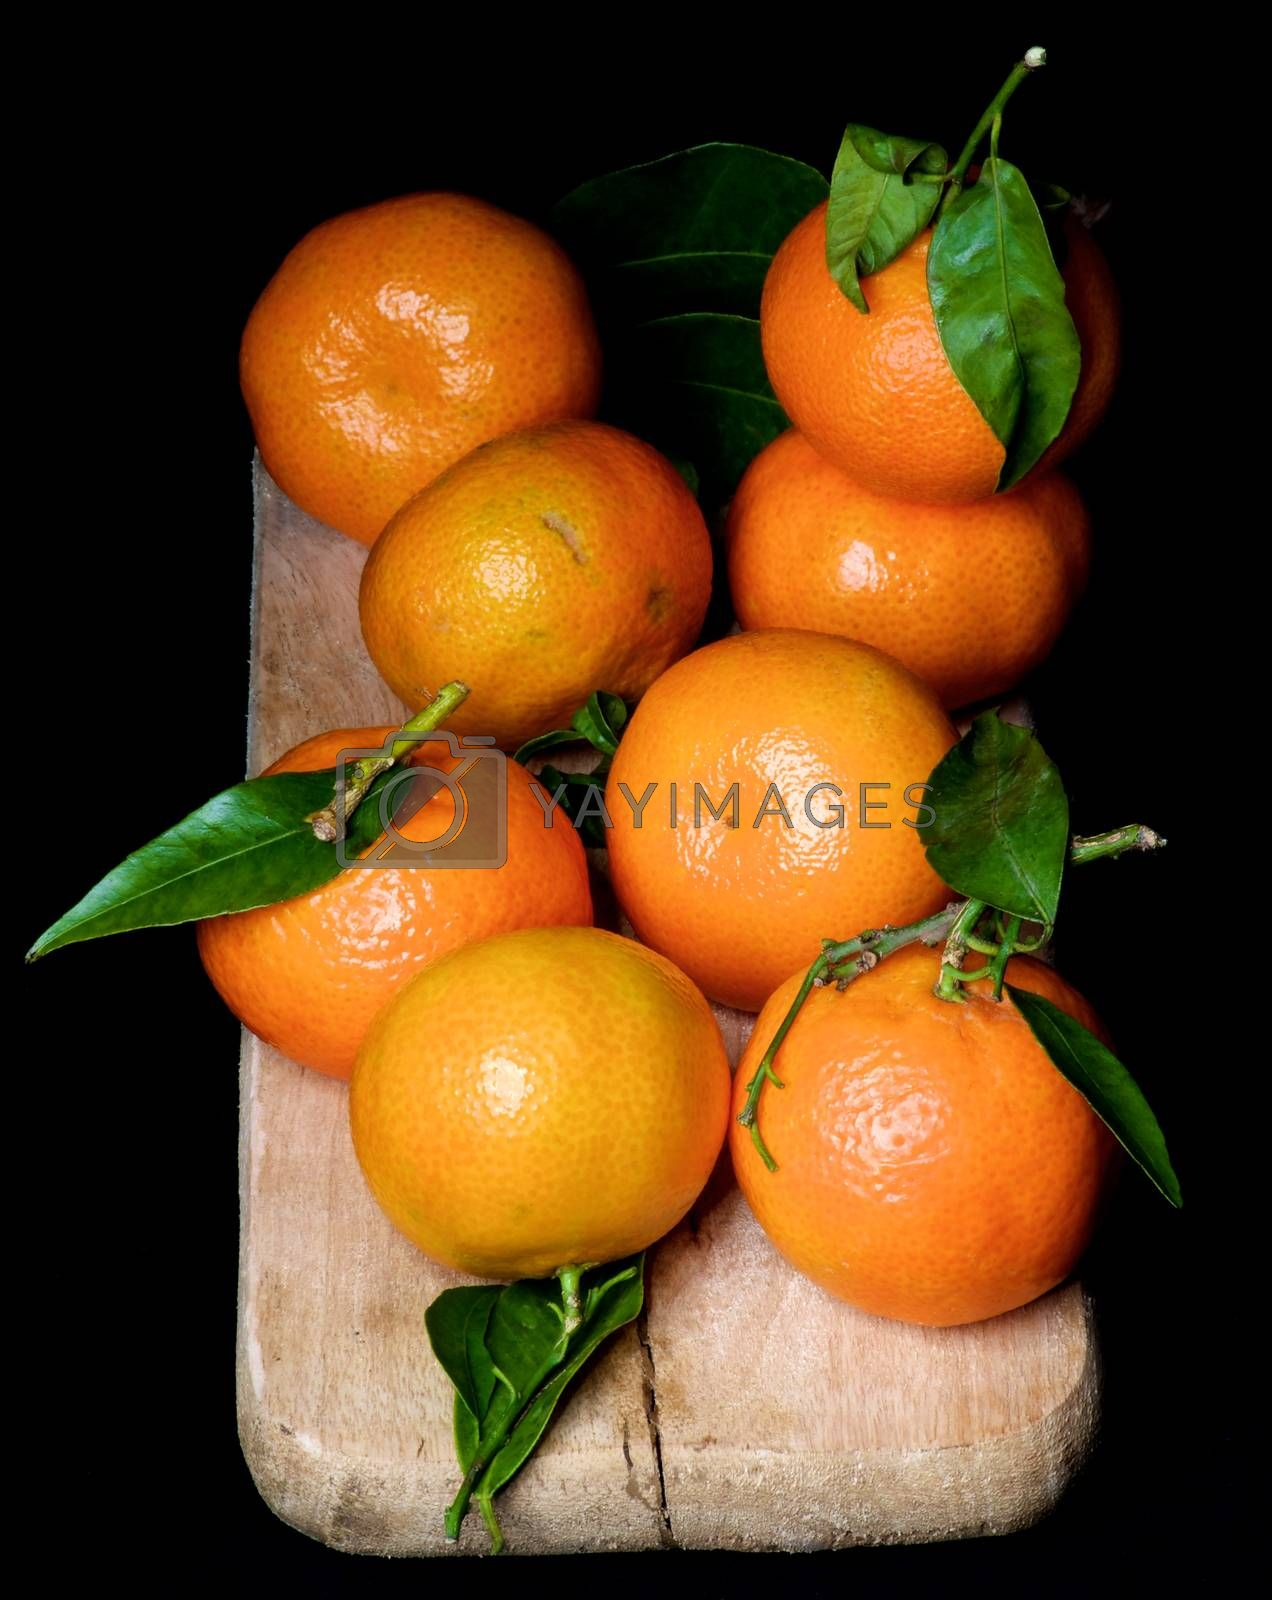 Fresh Ripe Tangerines with Leafs and Stems on Wooden Cutting Board isolated on Black background